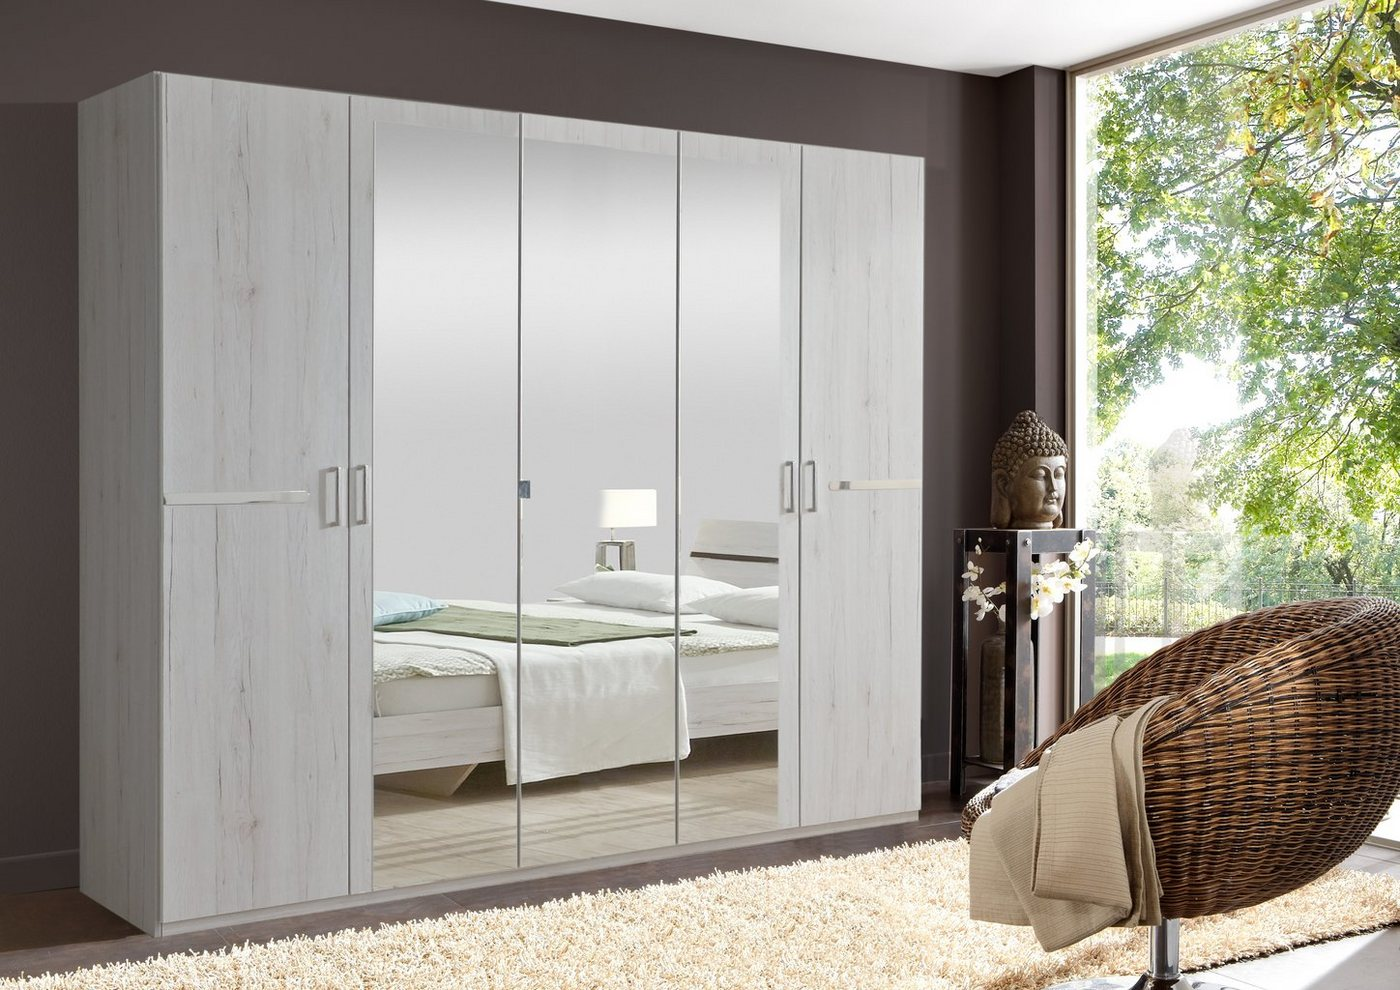 weiss kleiderschrank 180 cm breit machen sie den preisvergleich bei nextag. Black Bedroom Furniture Sets. Home Design Ideas